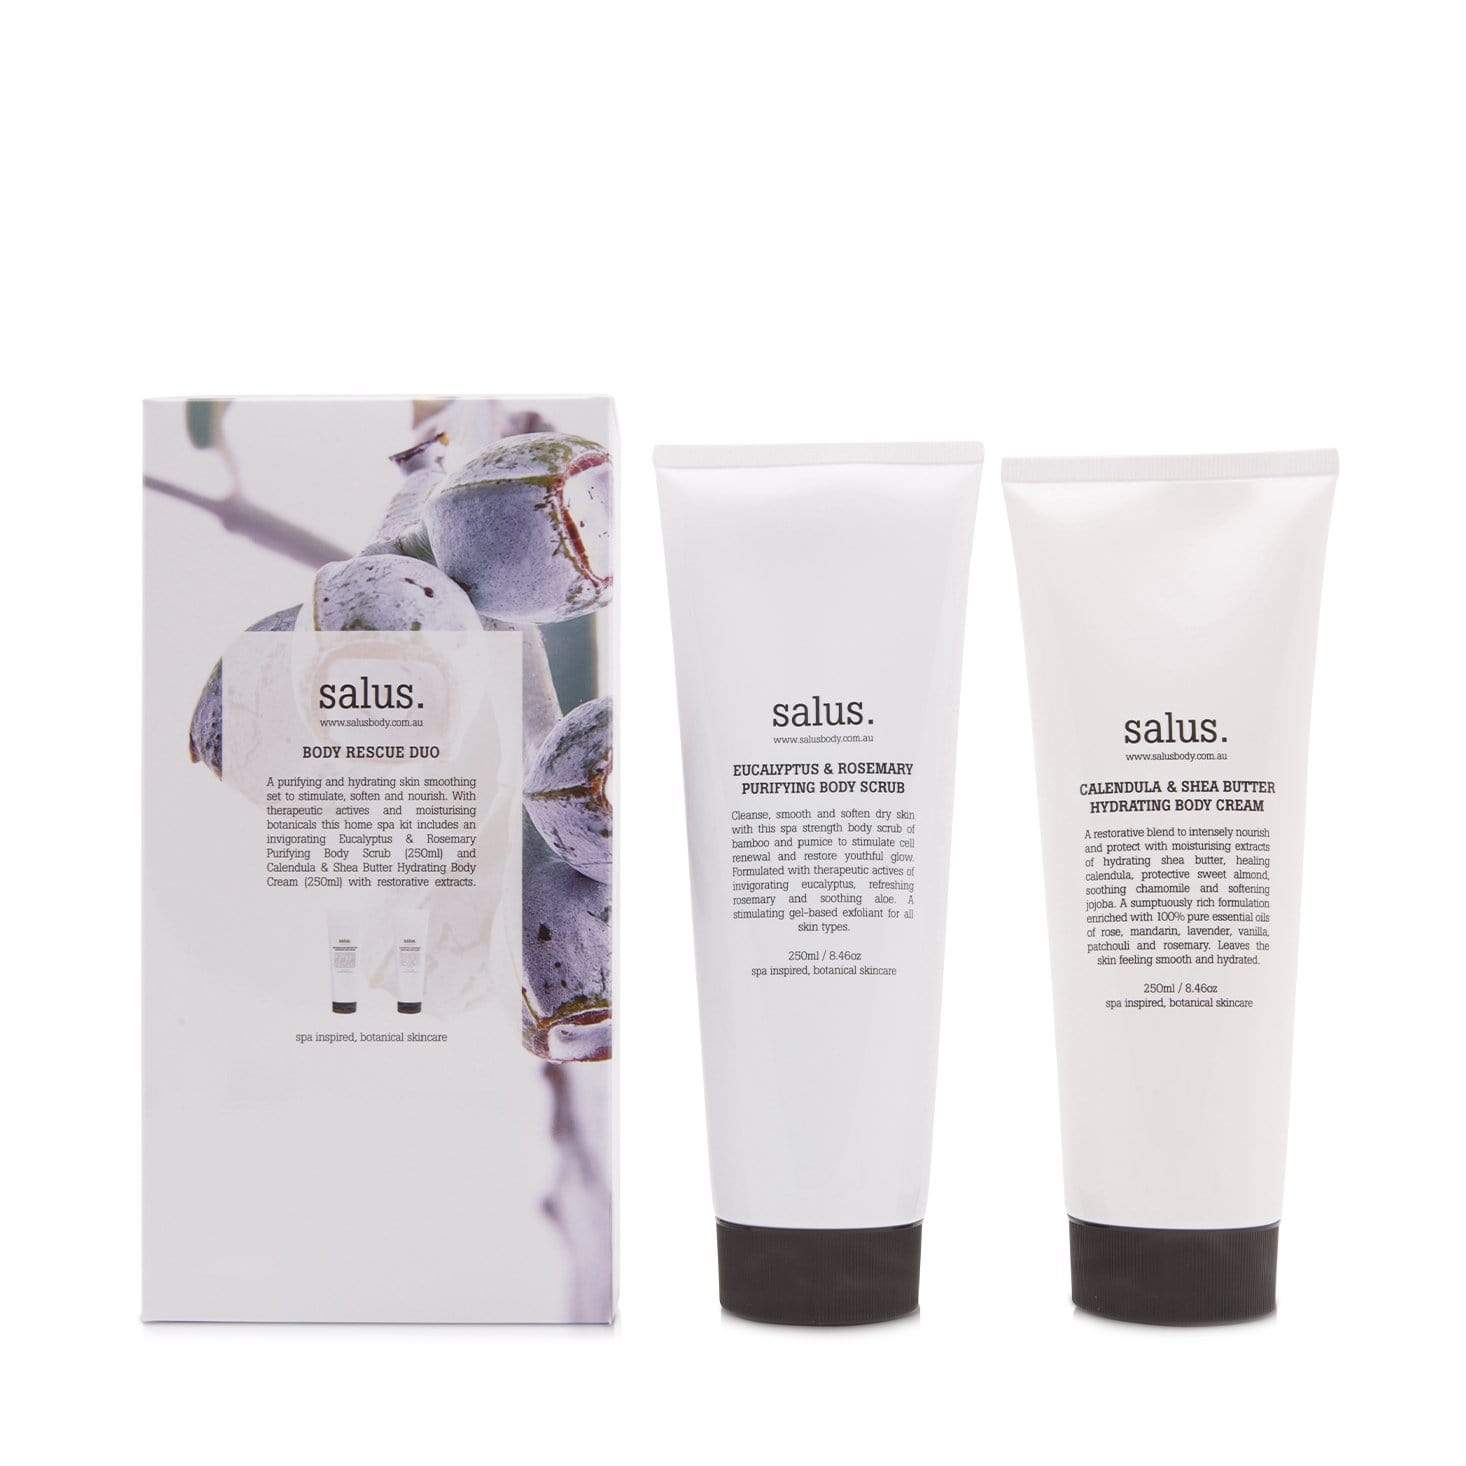 Salus Body Rescue Duo - Value $67